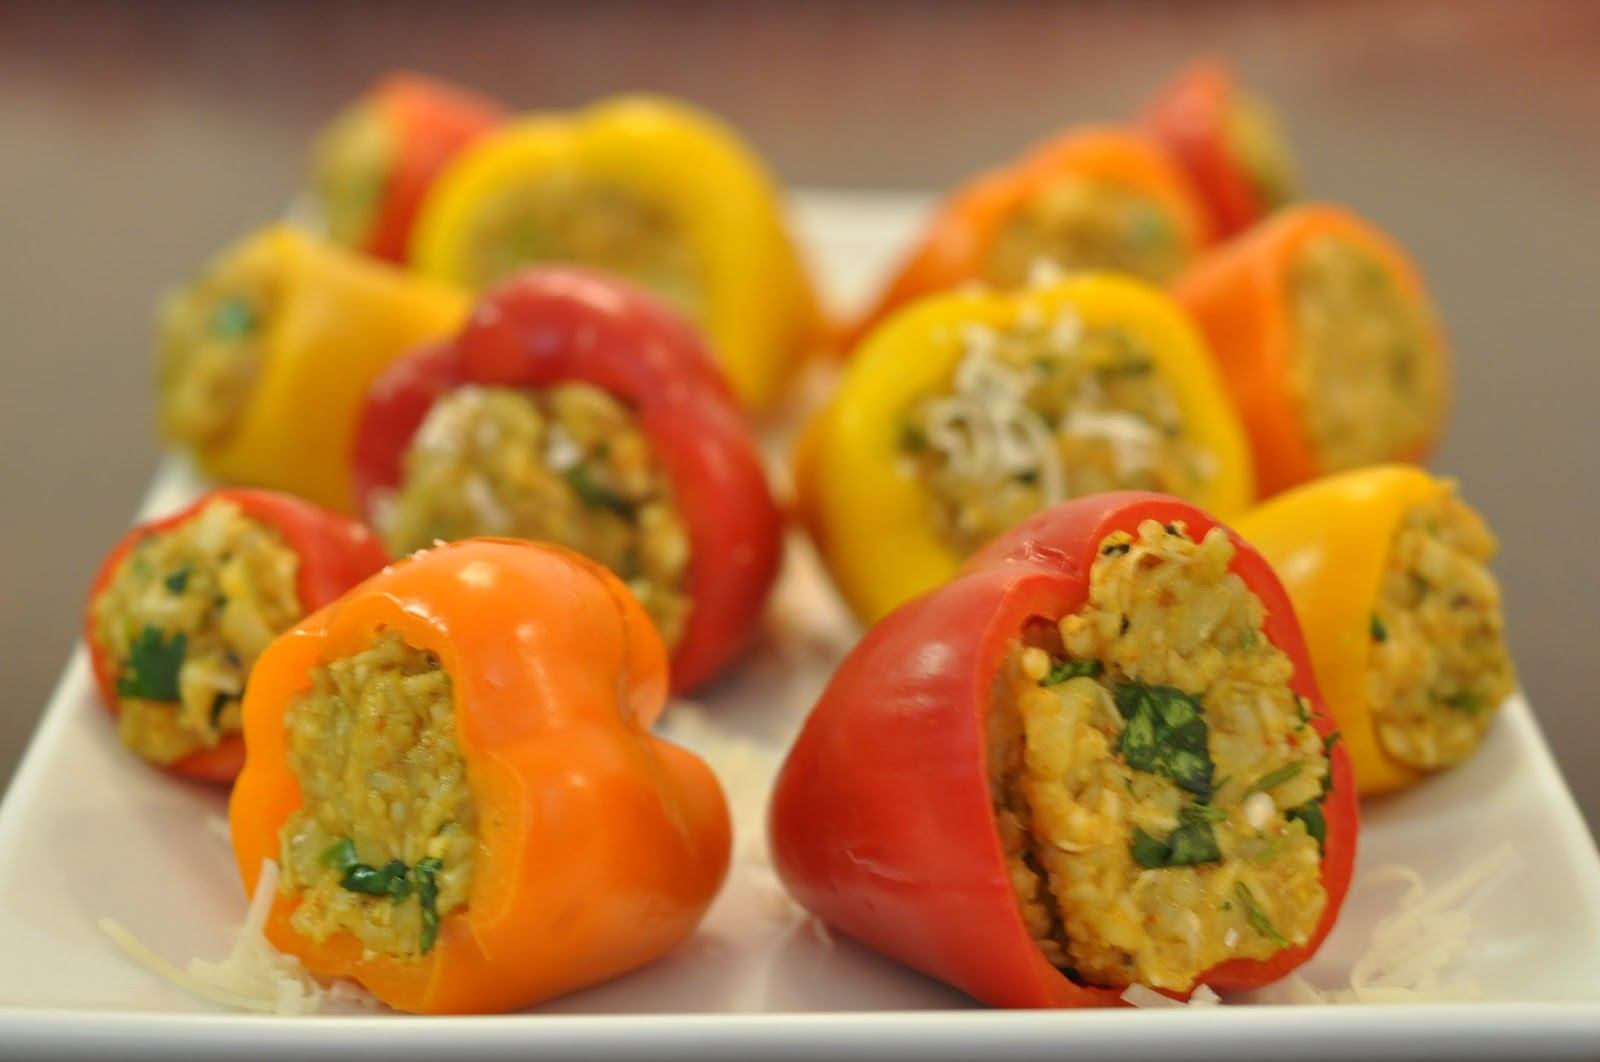 Spice Infused: Grilled stuffed mini bell peppers